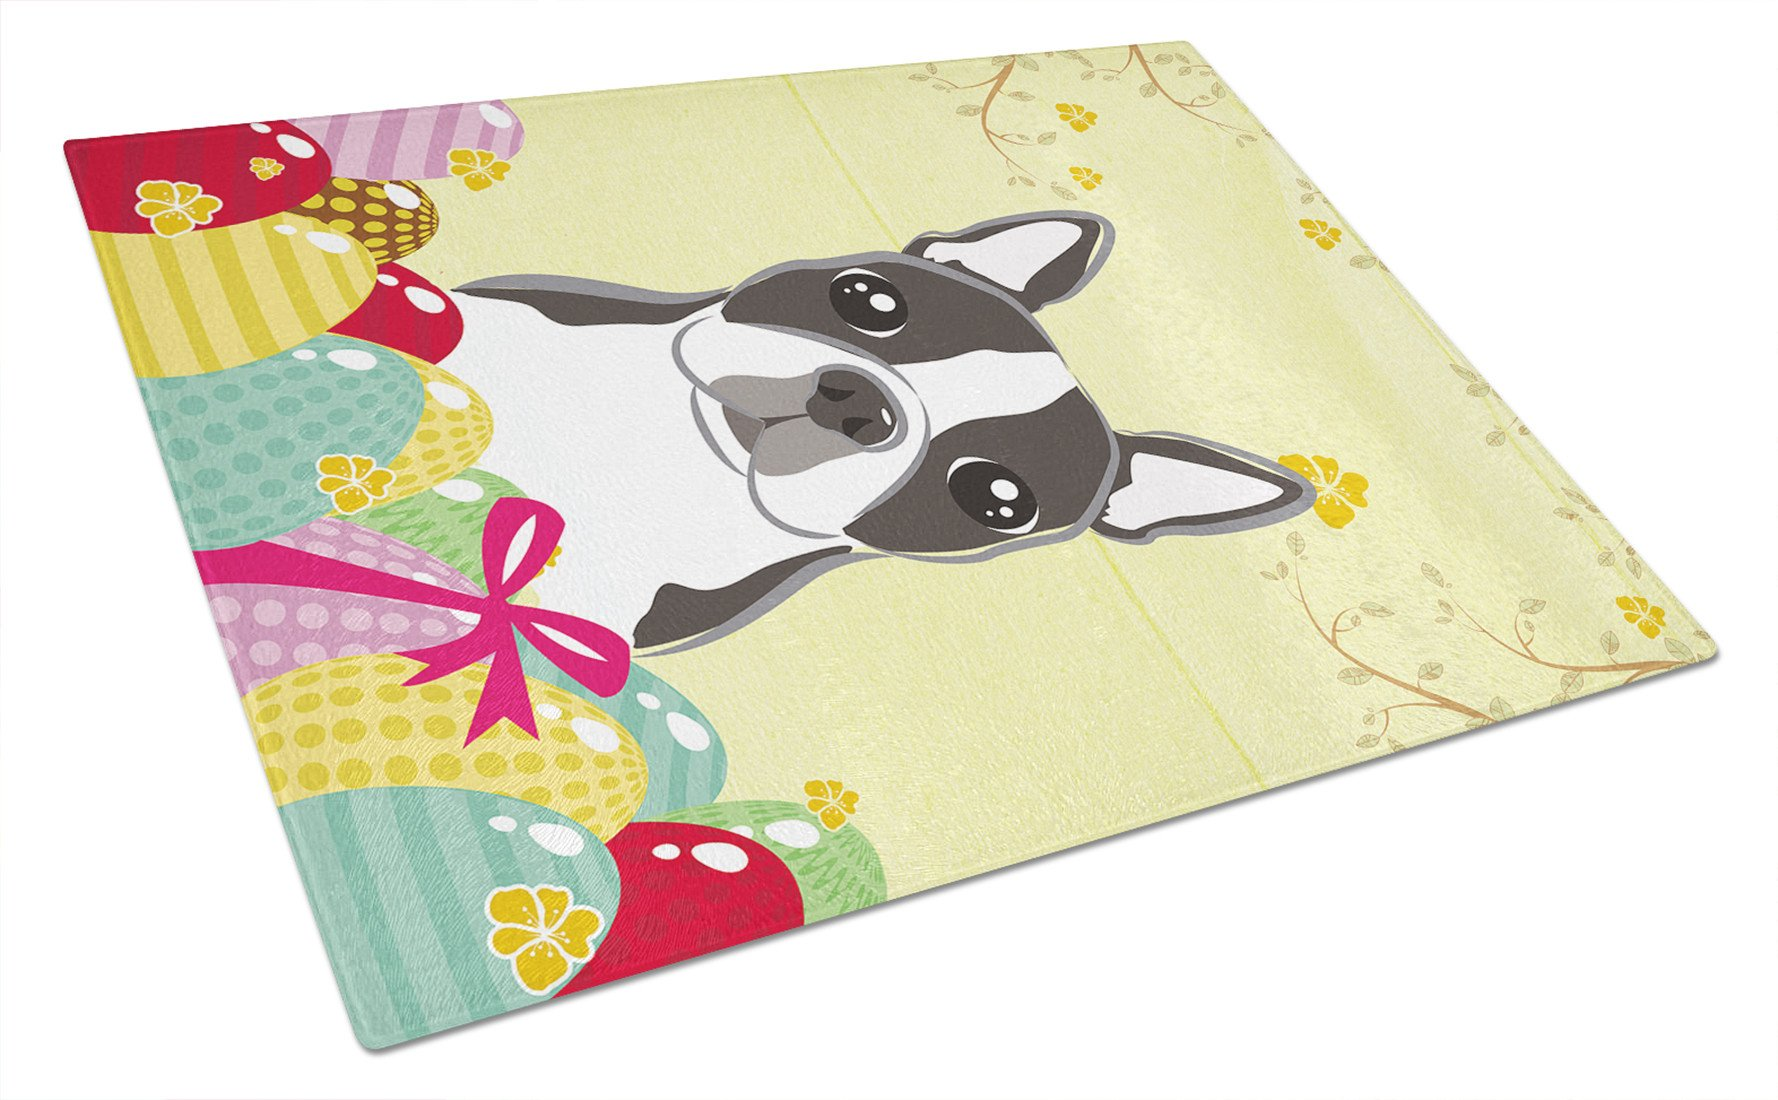 Boston Terrier Easter Egg Hunt Glass Cutting Board Large BB1885LCB by Caroline's Treasures